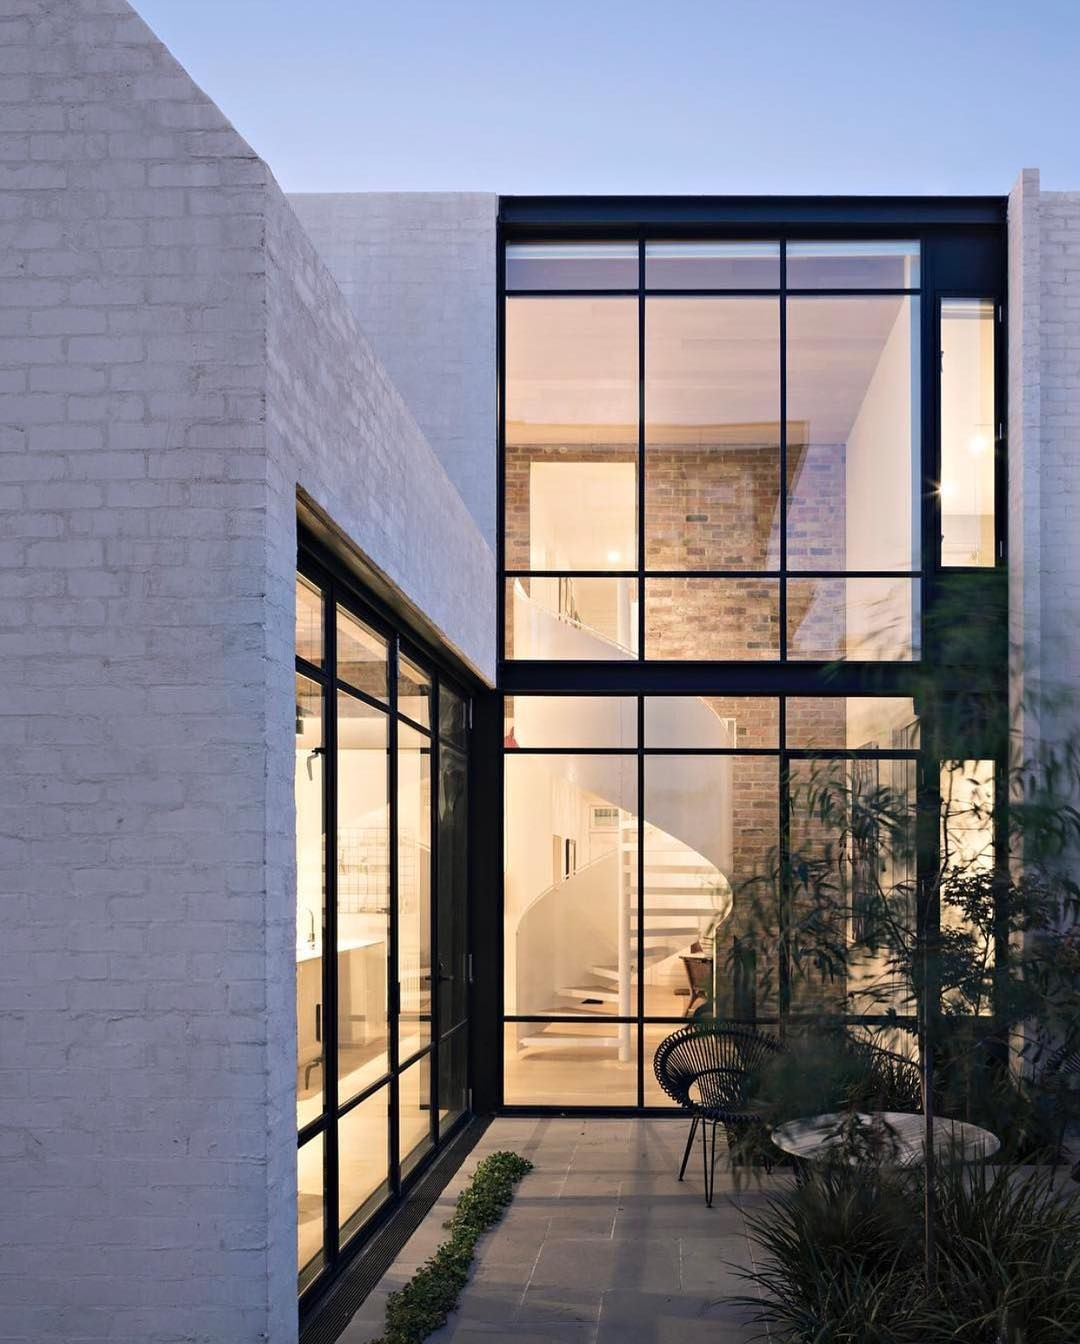 Exterior window wall design design interiors architecture thelocalproject on instagram